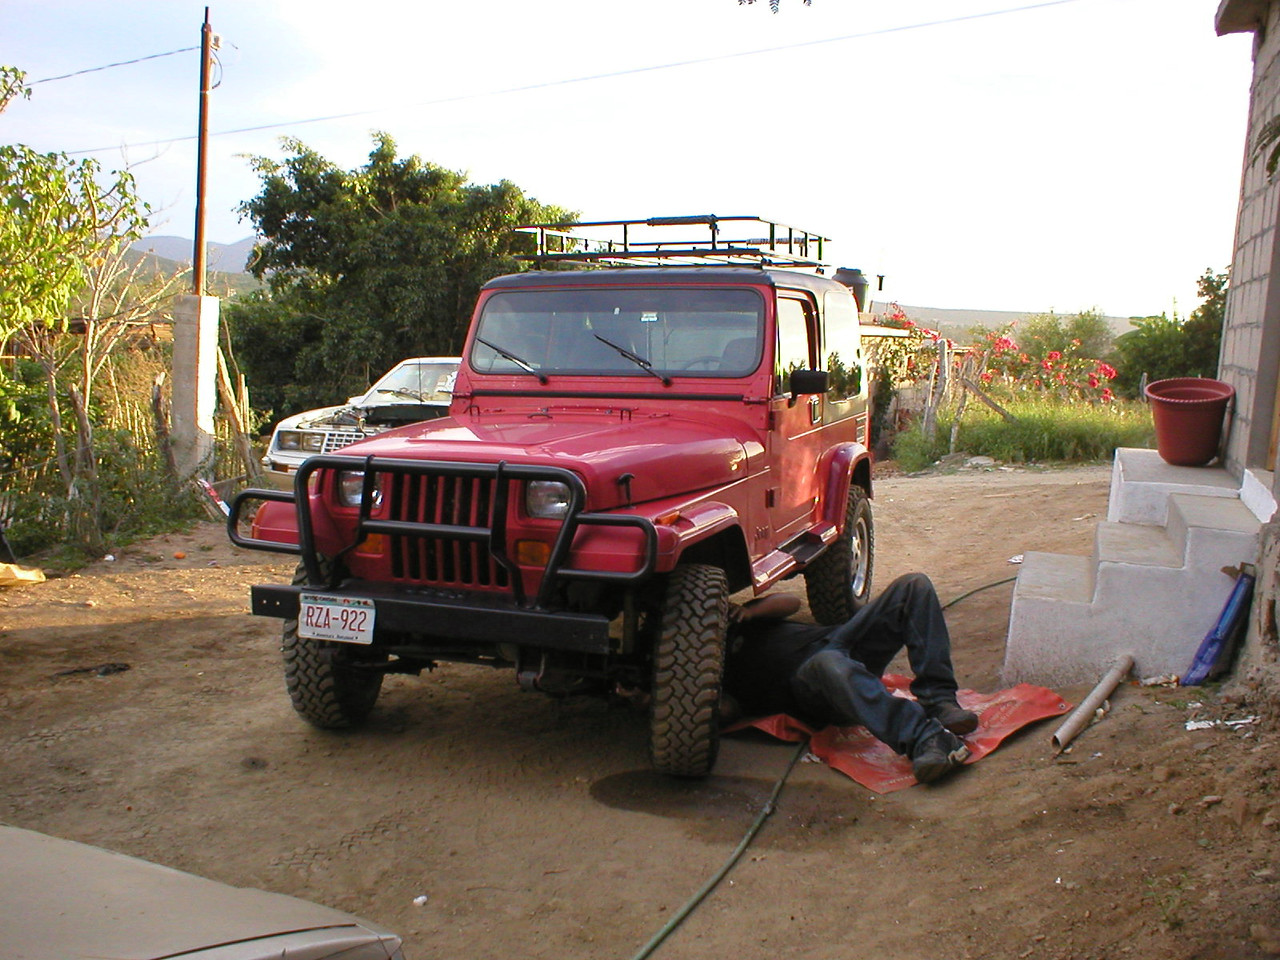 Cristian pulls up and shows me all the stuff he did, the jeep was spotless inside and out. We drive the jeep over to look at his new lot, he yells out the window at his girlfriend along the way. <br /> <br /> I love Mexico.